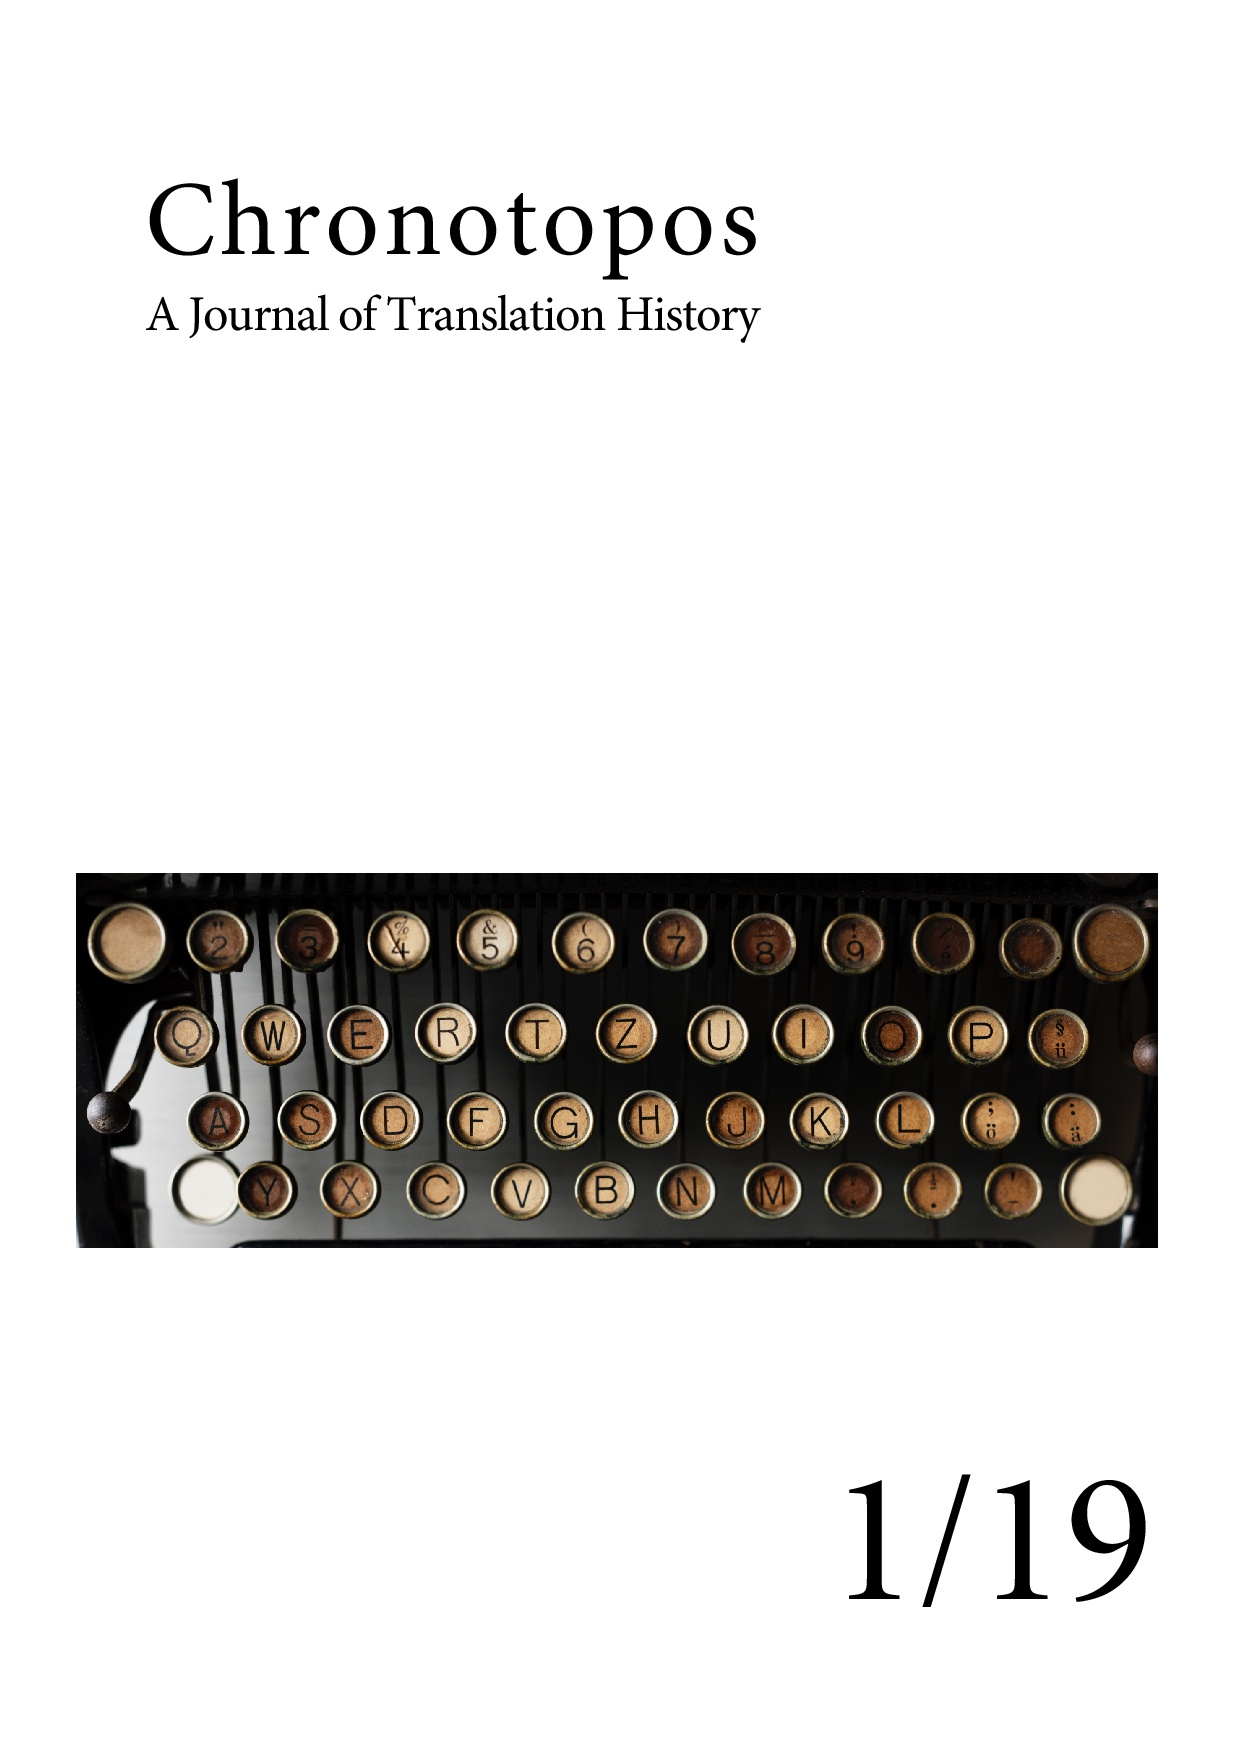 cover of first issue of chronotopos, a journal of translation history